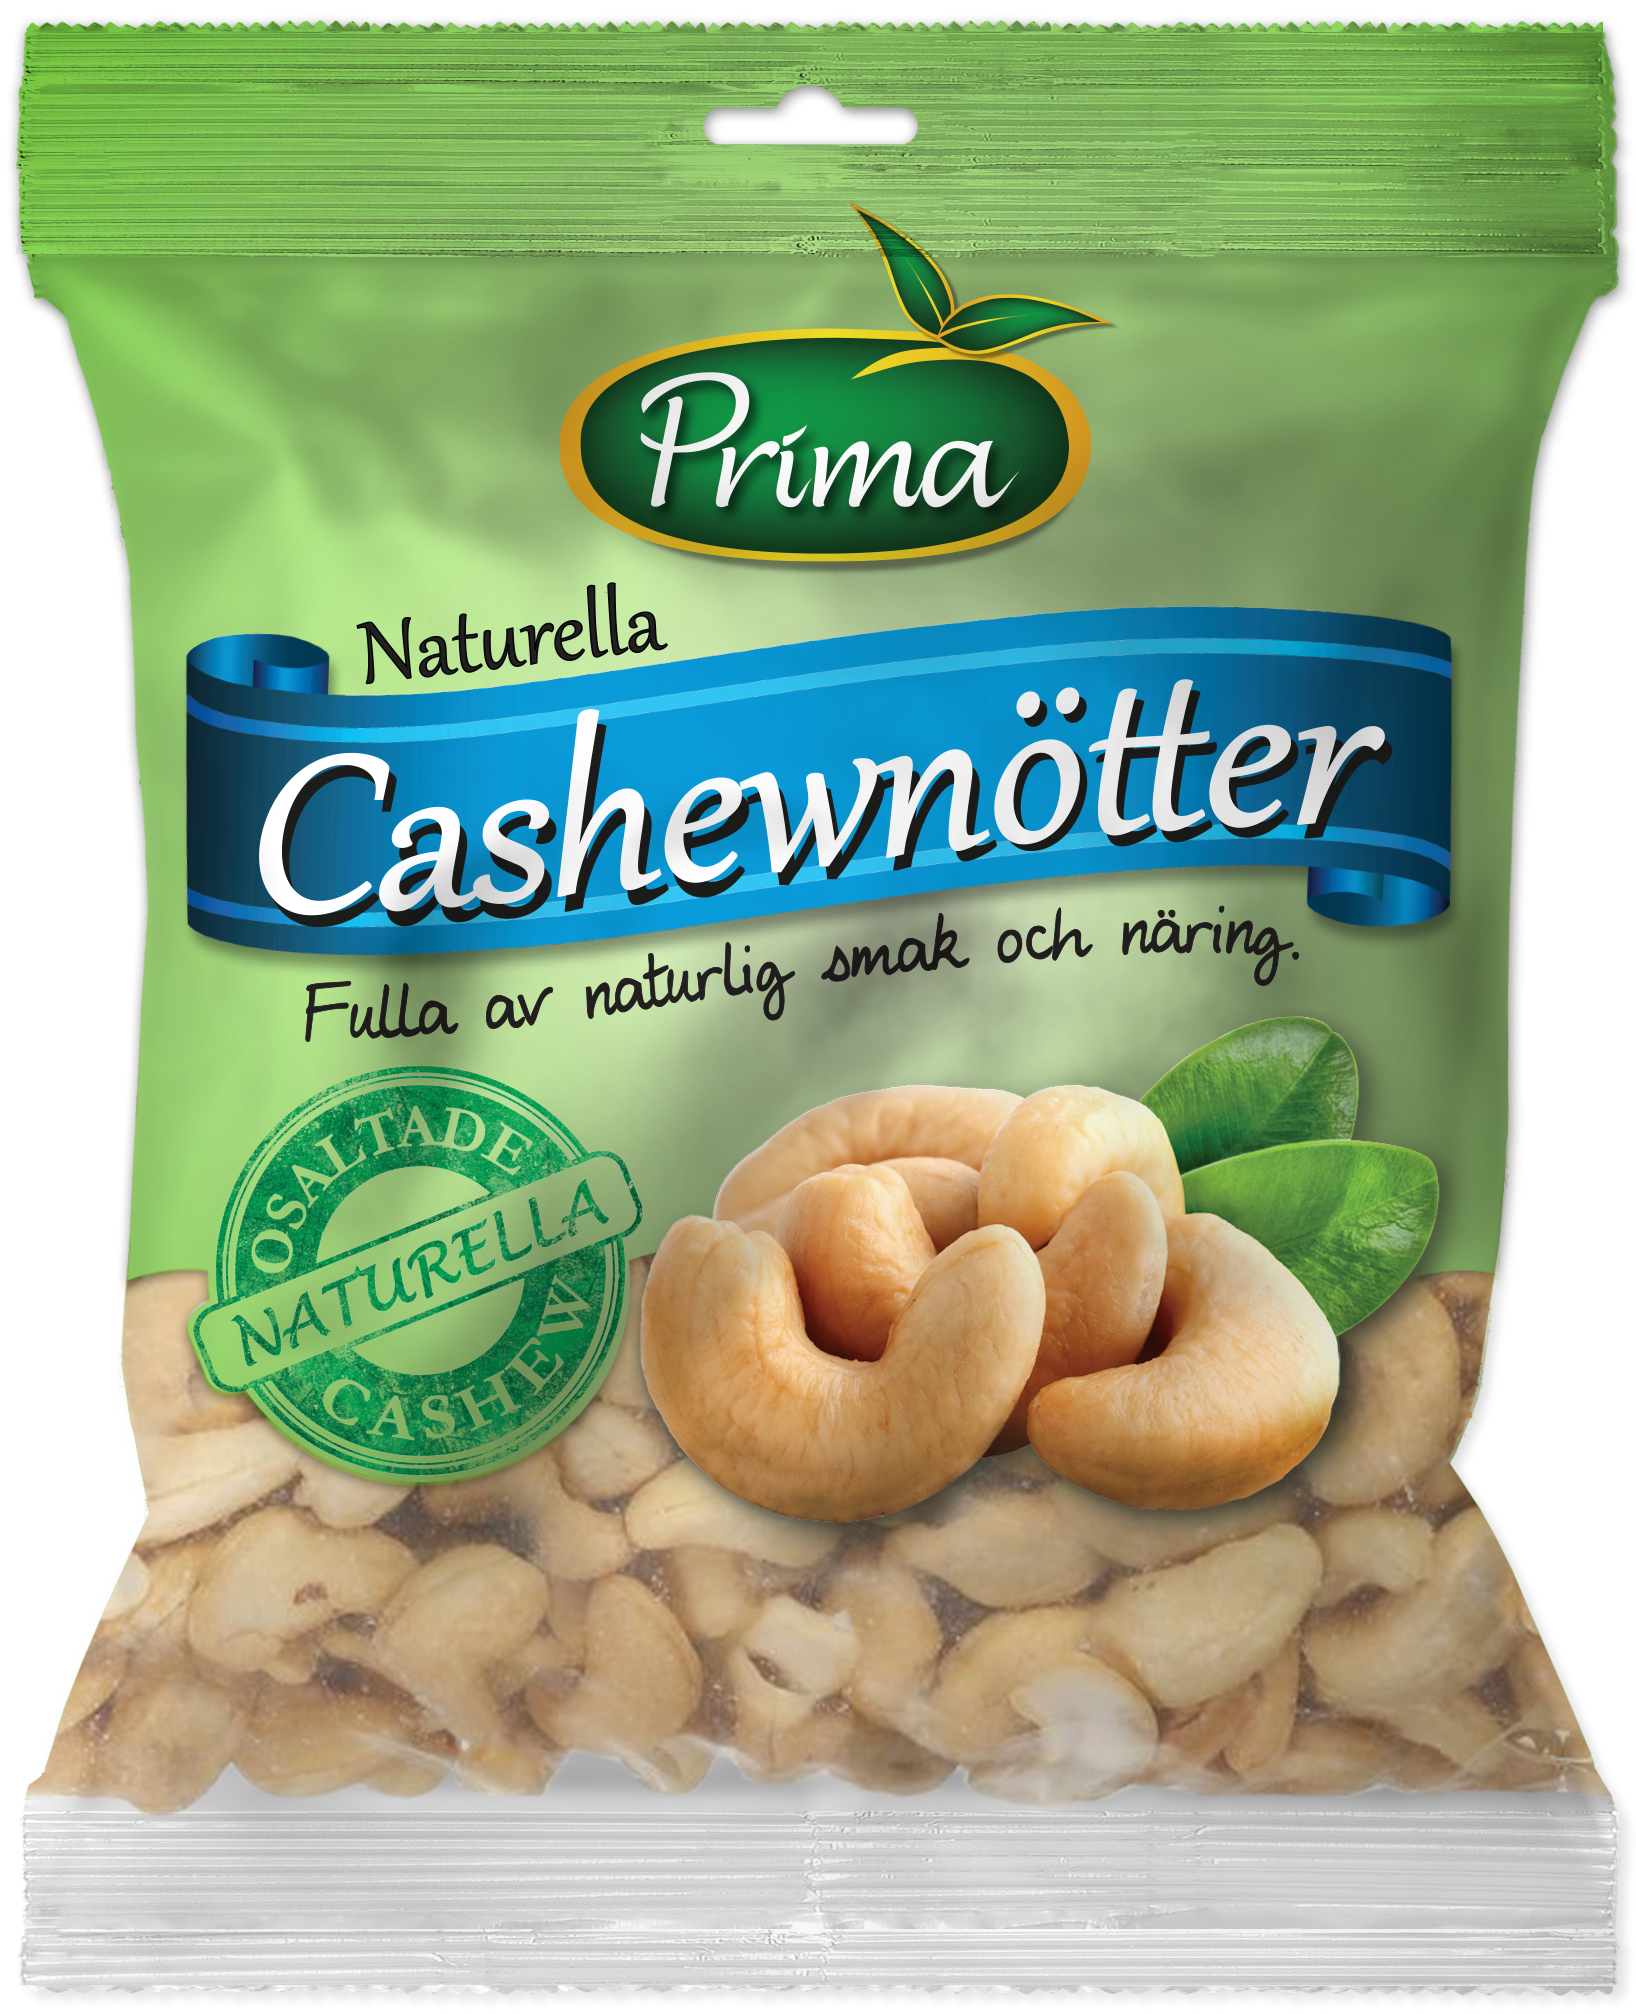 natural Cashew nuts - Our natural cashews are rich unsaturated fat, minerals, vitamins and protein.Ingredients:Natural Cashew kernelsNutritional value per 100gEnergy 590kcal / 2468kJFat 46g, of which saturated fat is 8gCarbohydrates 26g, of which sugars 6gProtein 18gFiber 6gSalt 0.03g